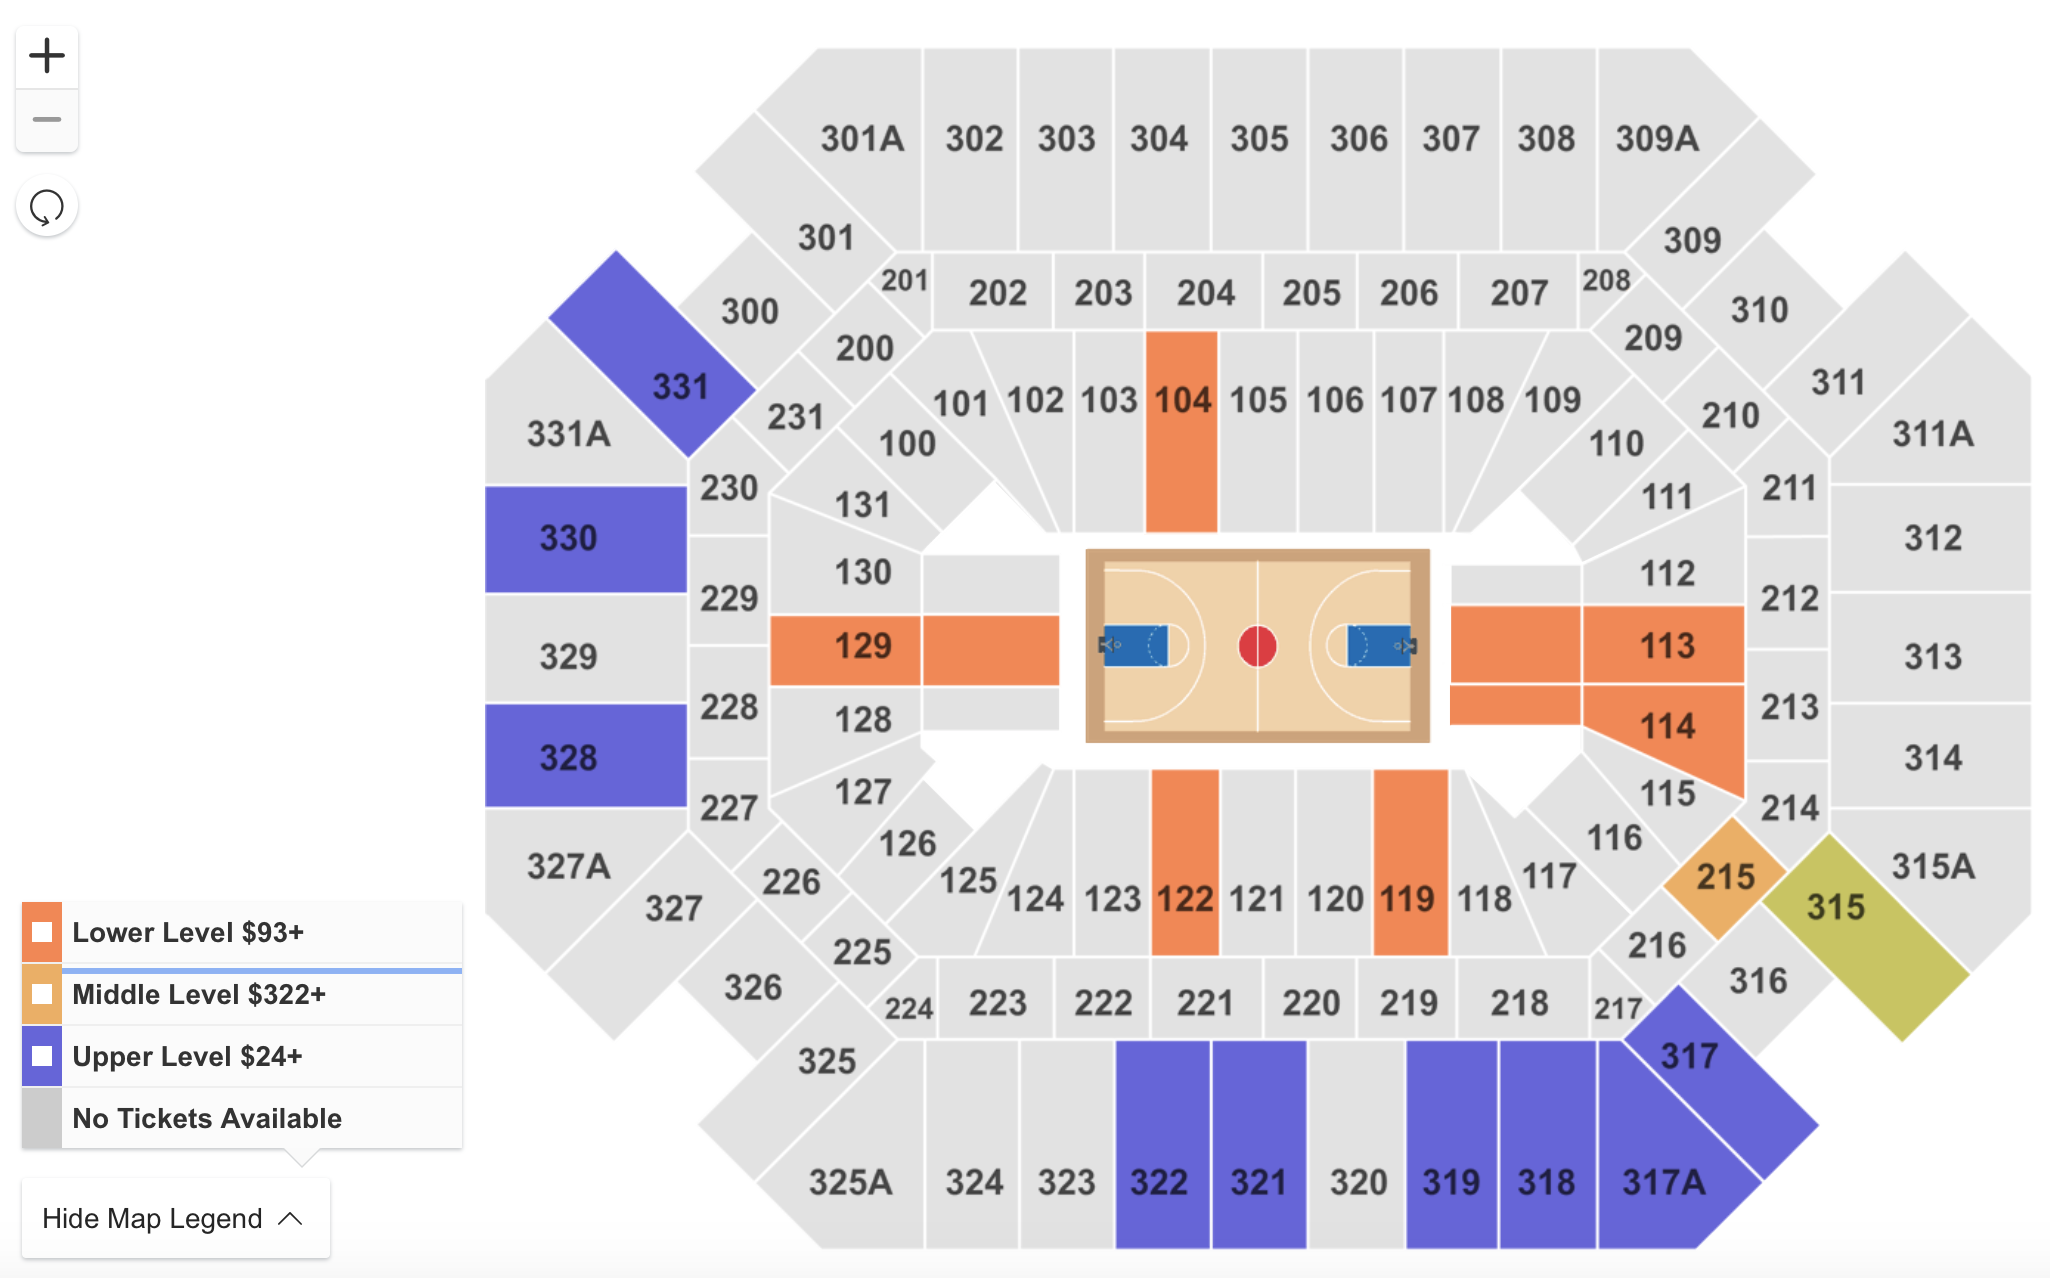 Where to Find The Cheapest Tennessee vs. Florida Basketball Tickets on 2/29